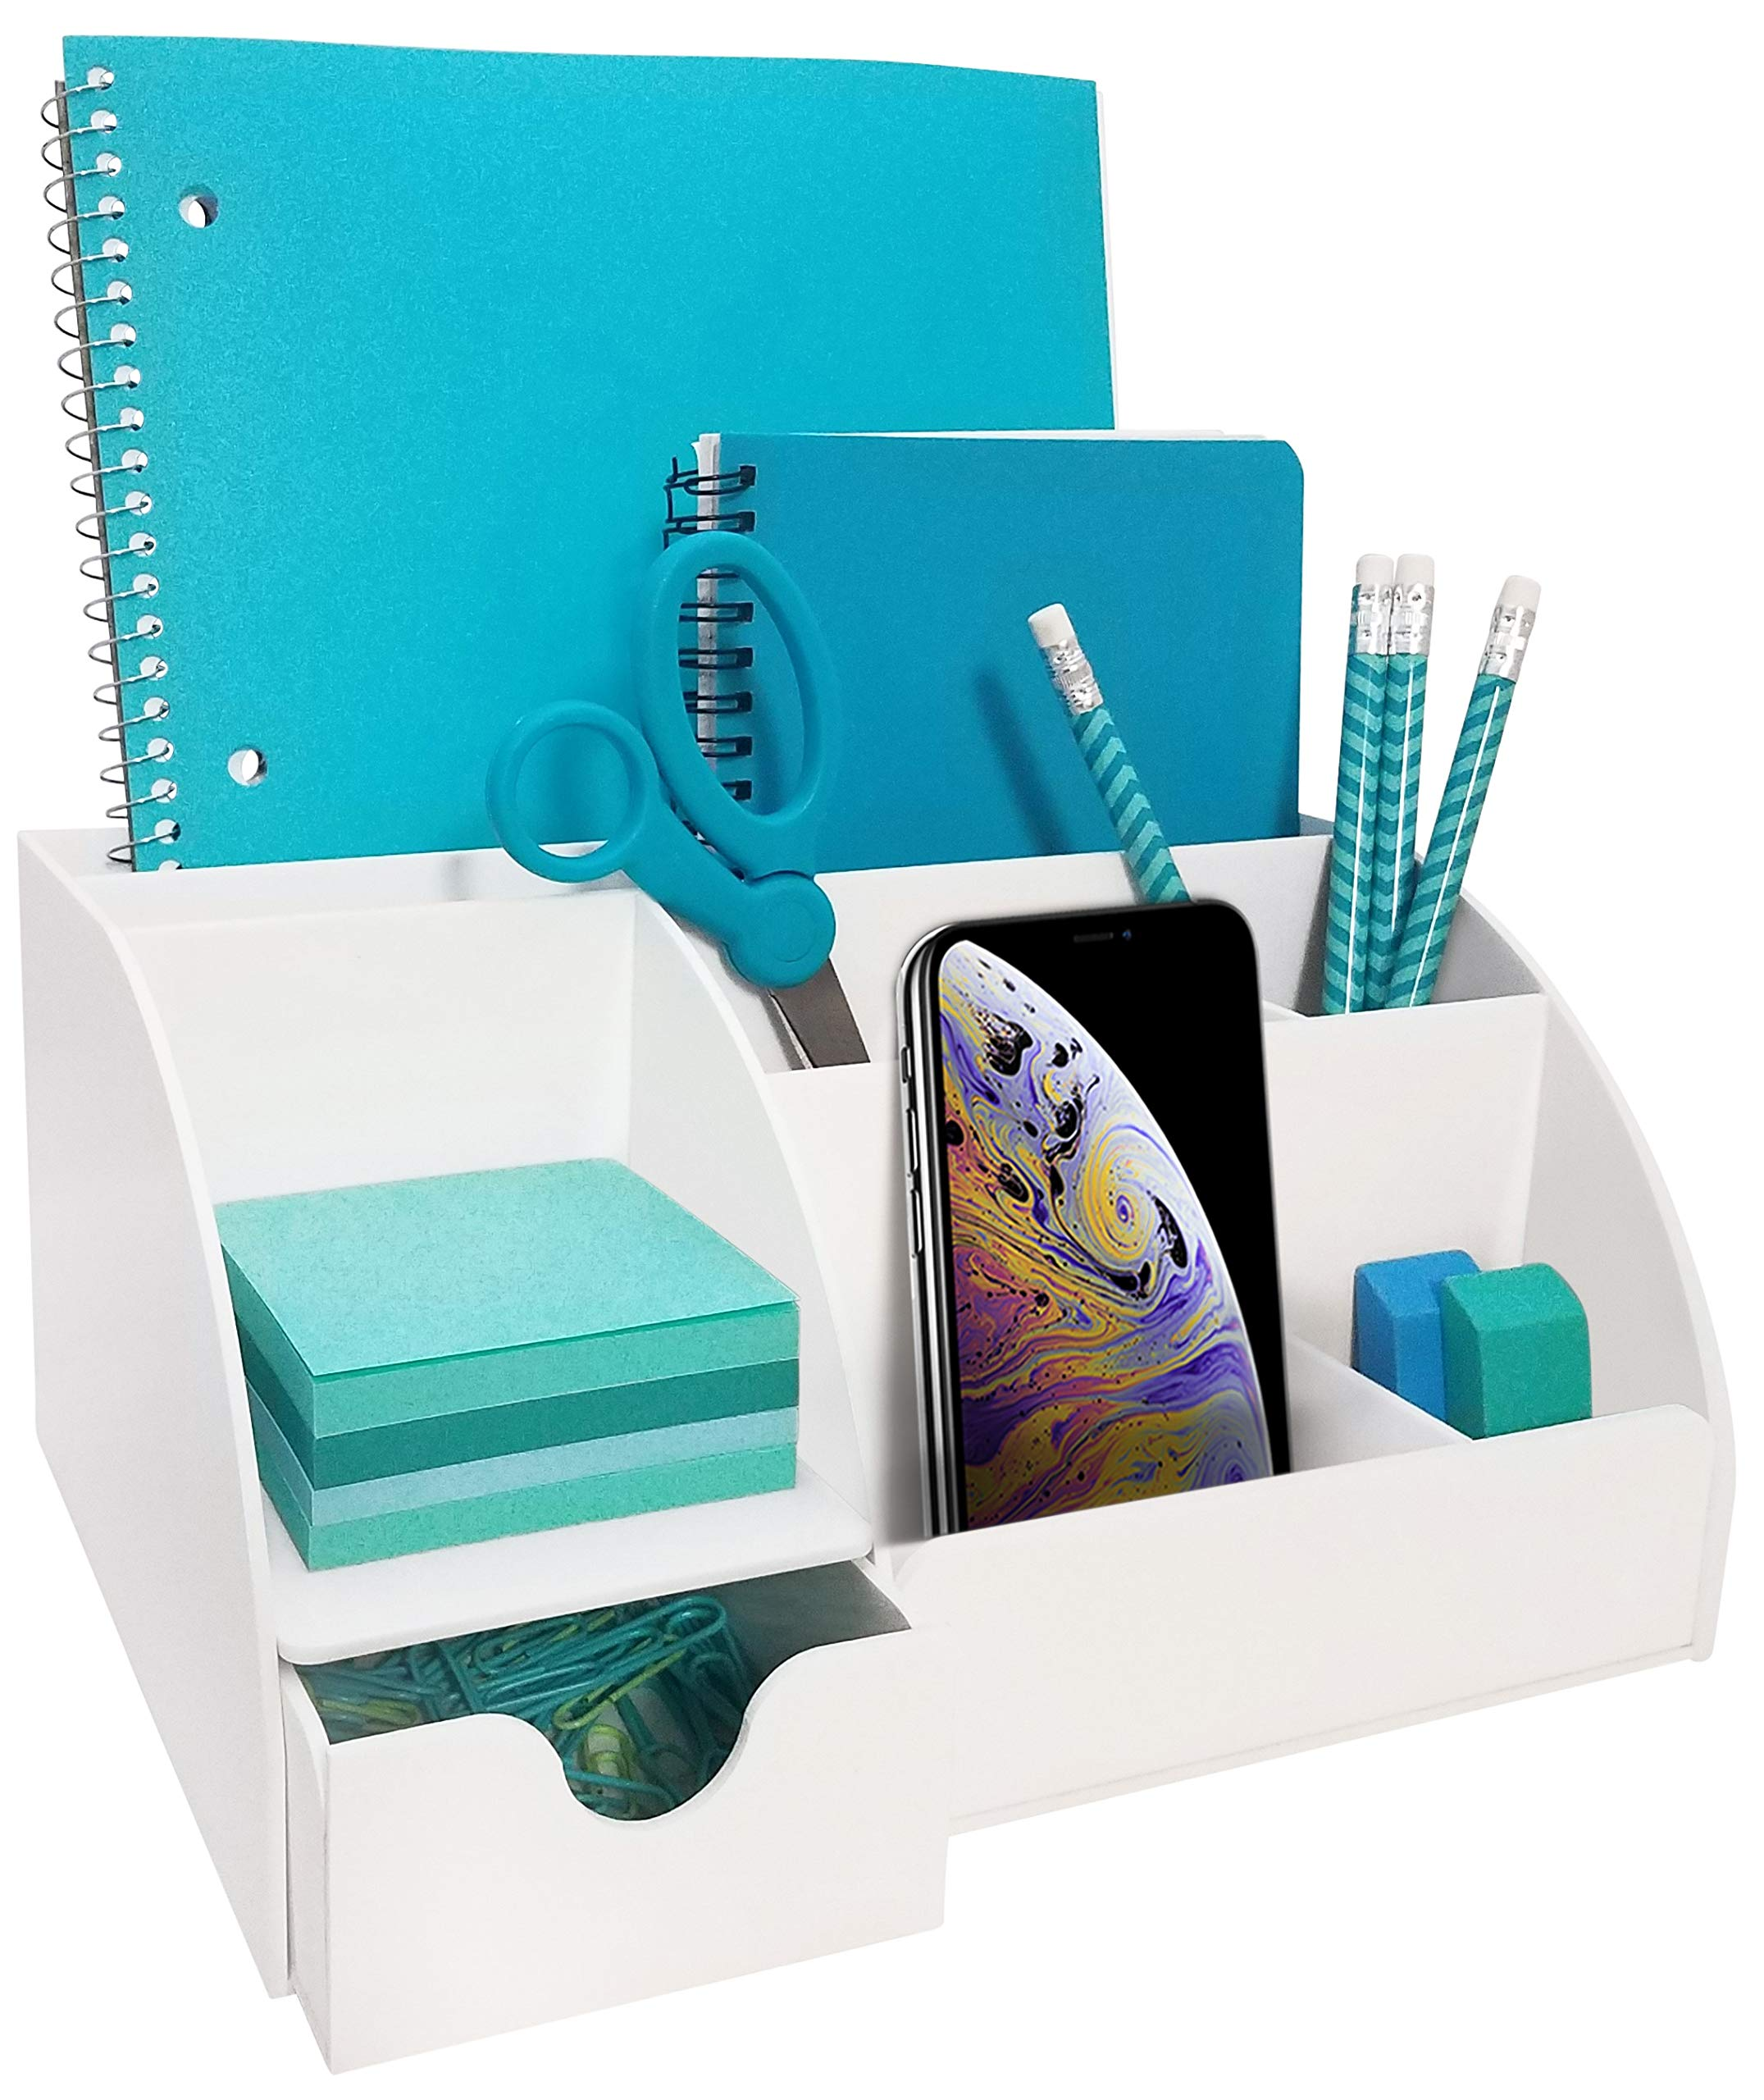 White Acrylic Office Desk Organizer with Drawer, 9 Compartments, All in One Office Supplies and Cool Desk Accessories Organizer, Pen Holder, Enhance Your Office Decor with This Desktop Organizer by My Space Organizers